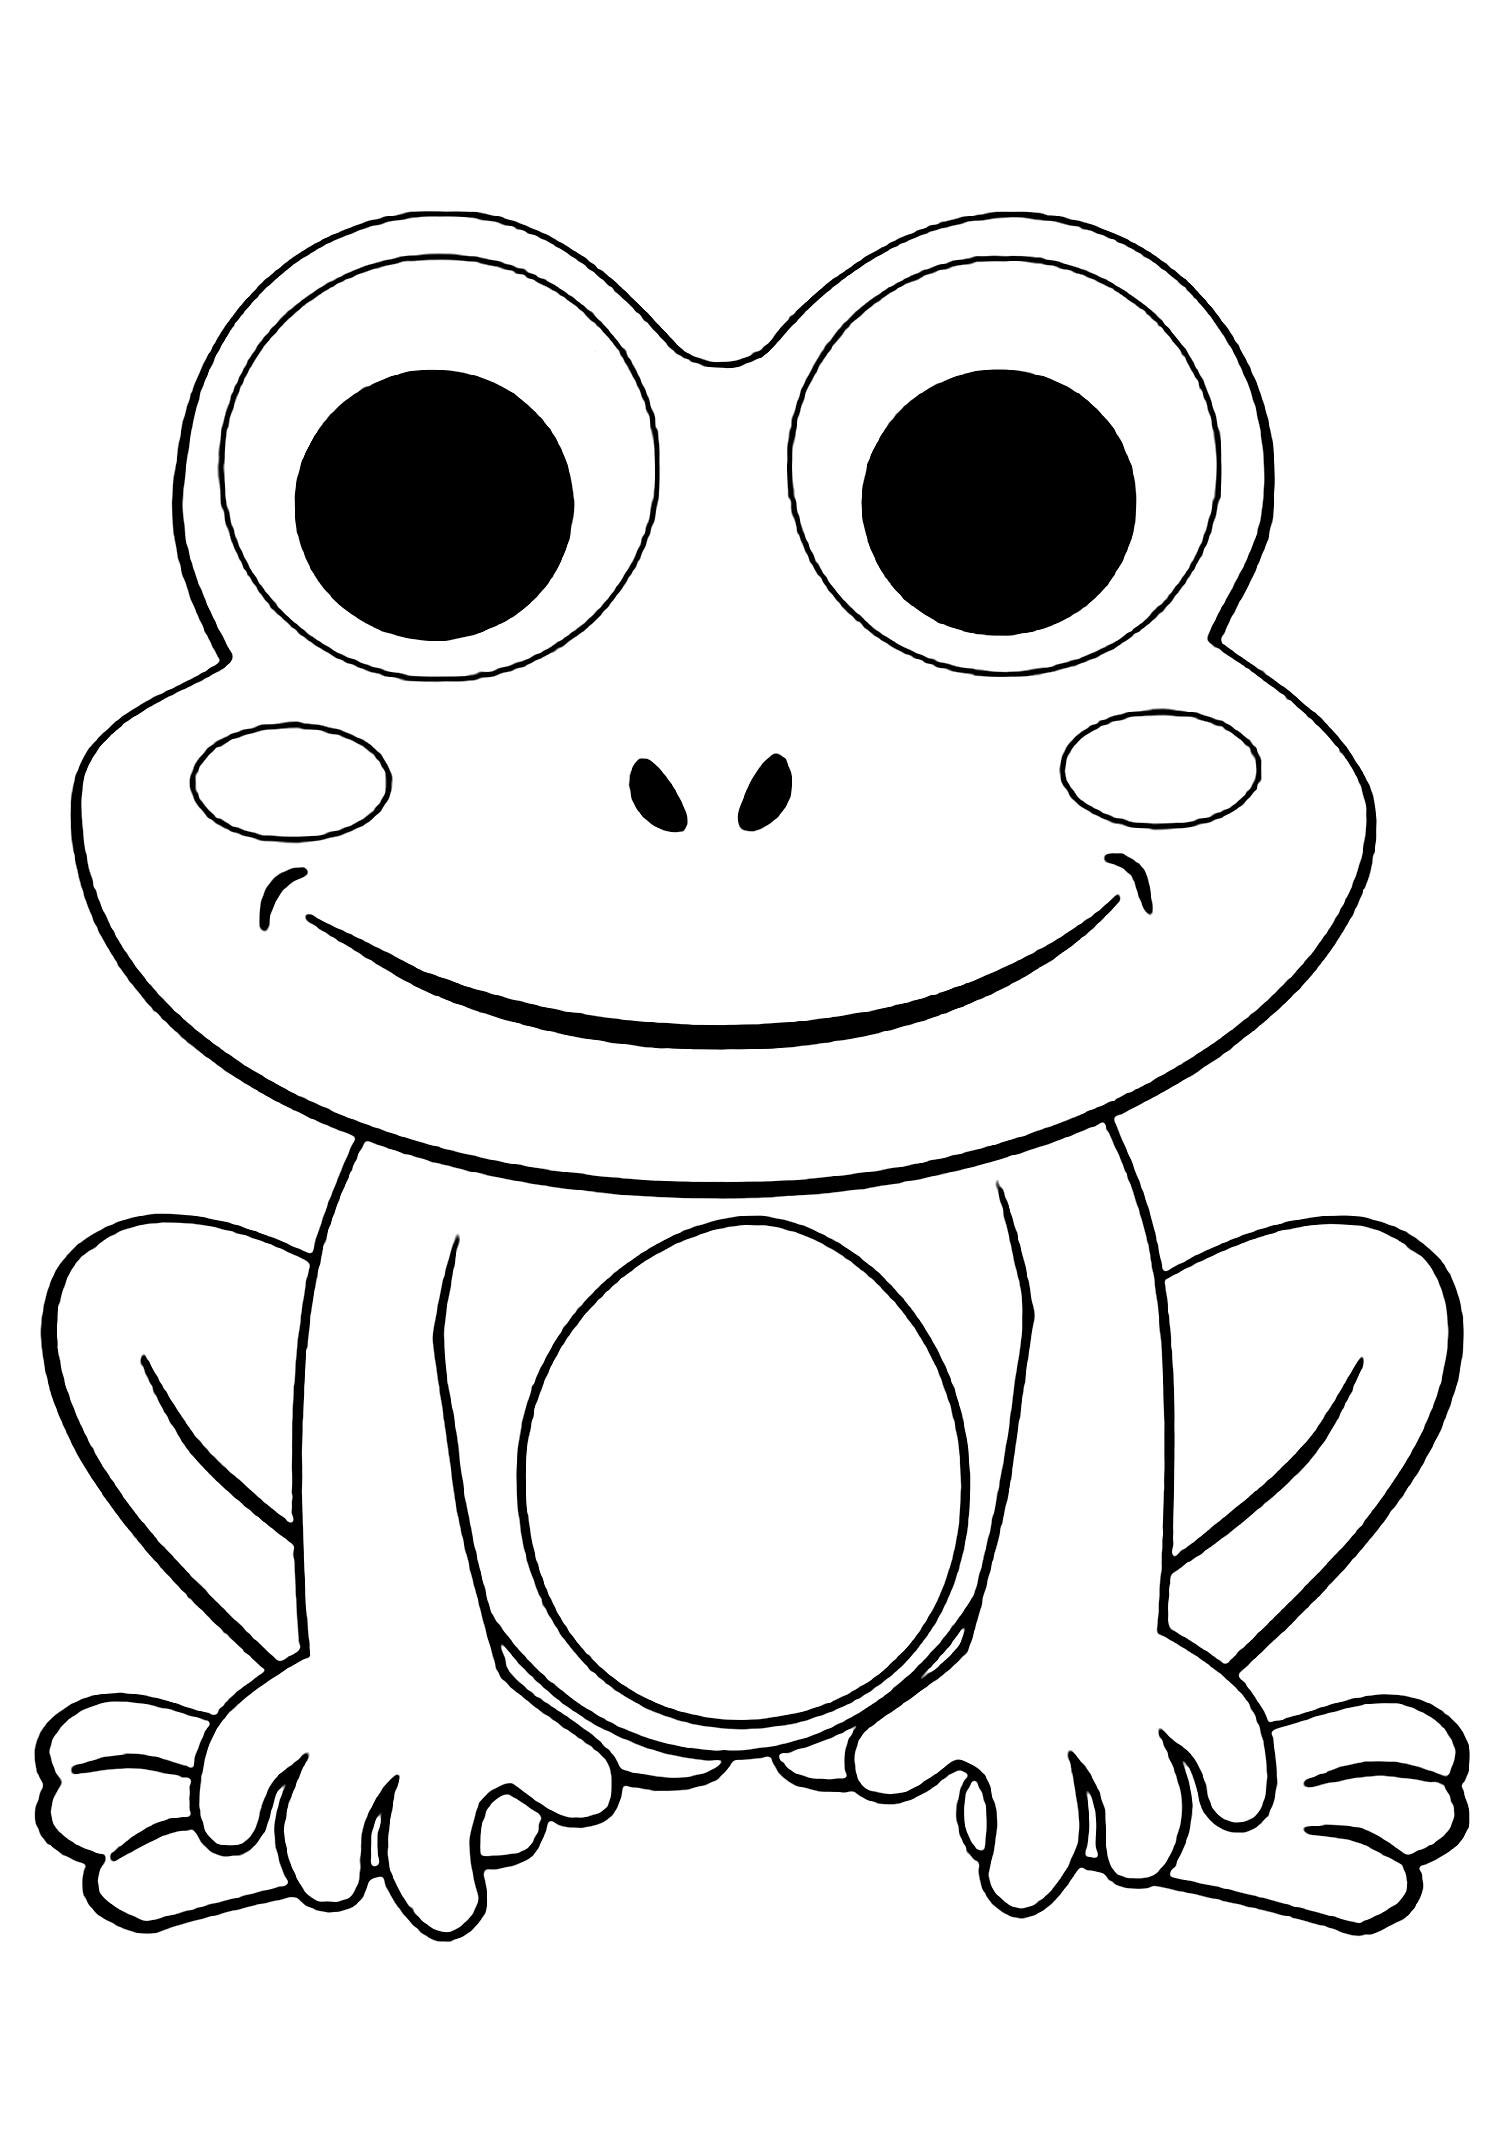 frogs to color for free print download frog coloring pages theme for kids for color frogs free to